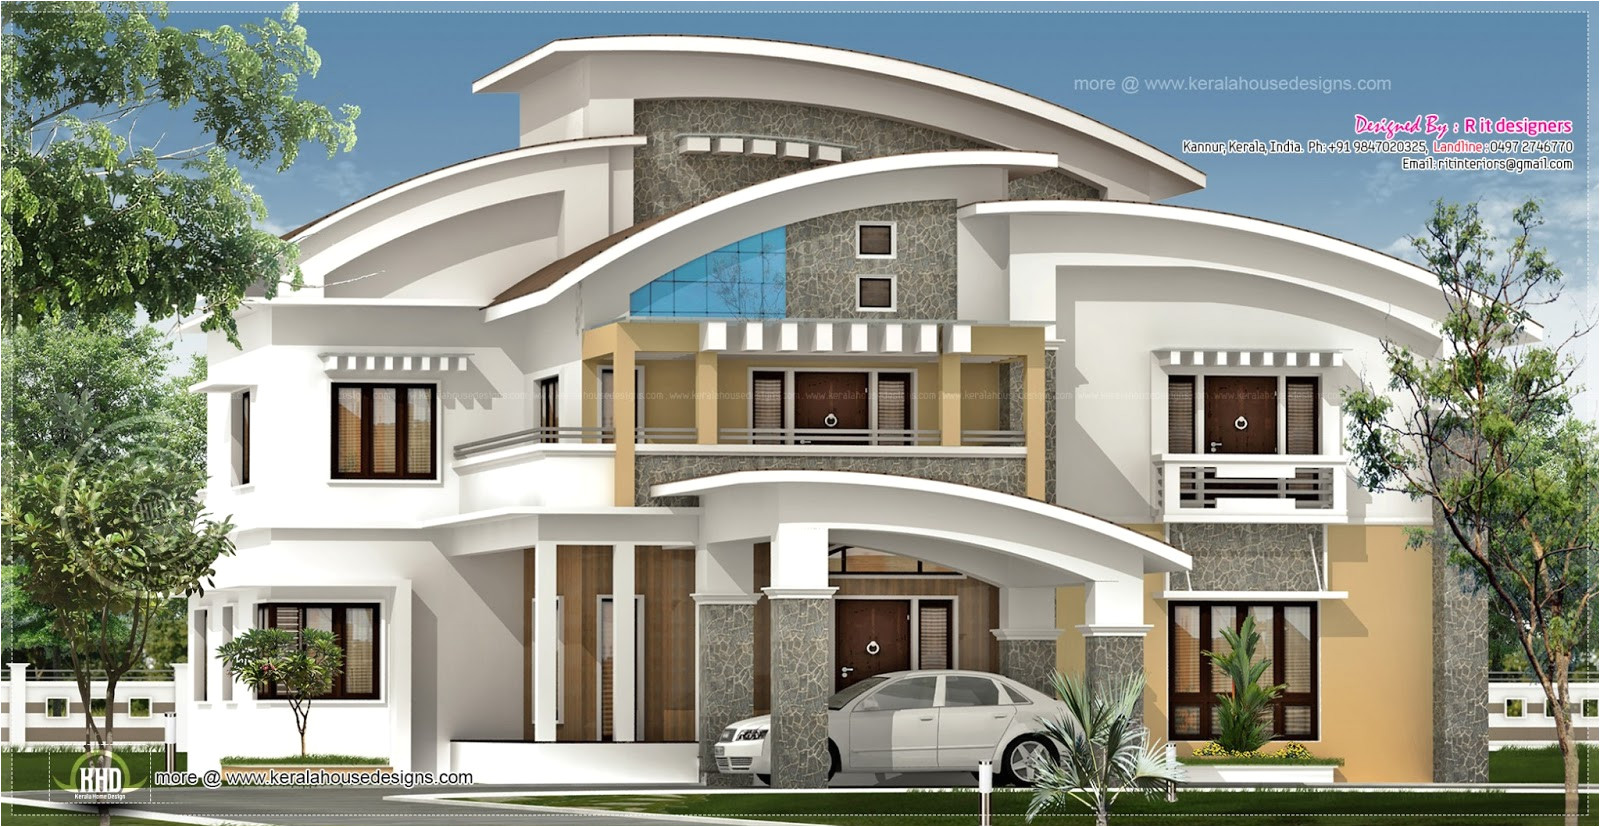 Luxurious Home Plans February 2014 House Design Plans